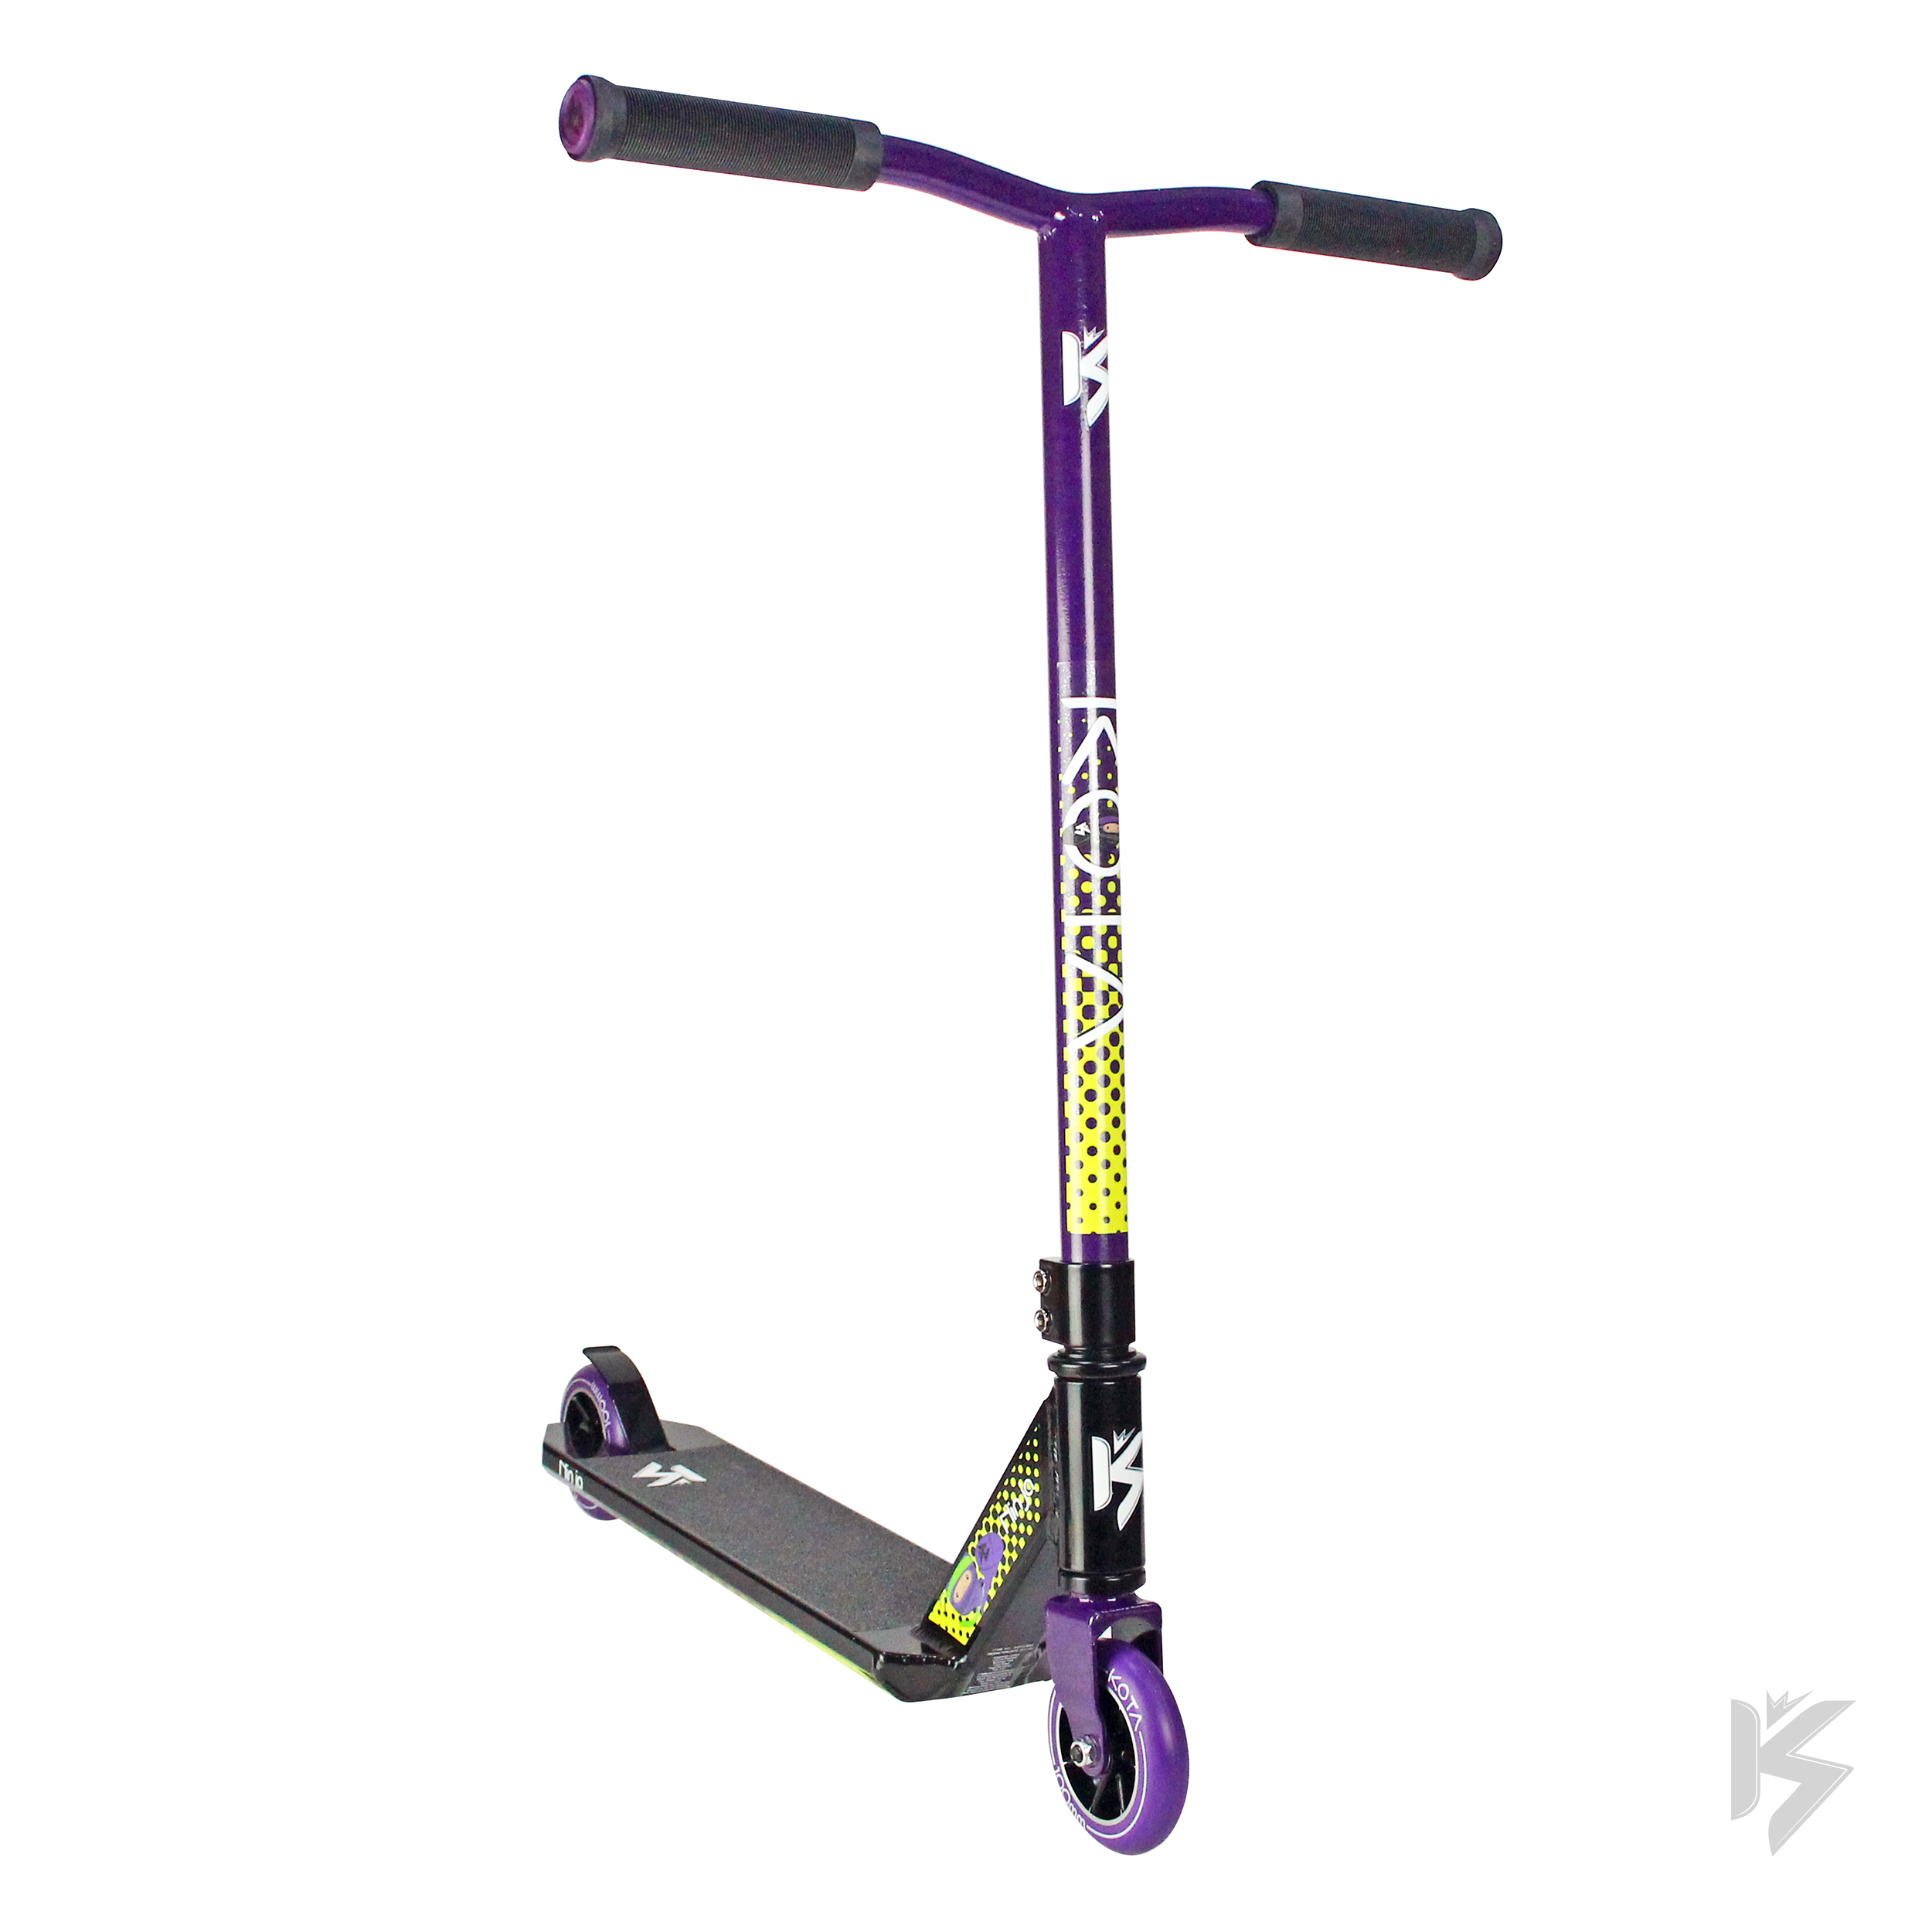 Kota Ninja Pro Scooter (Black Purple) by Kota Scooters